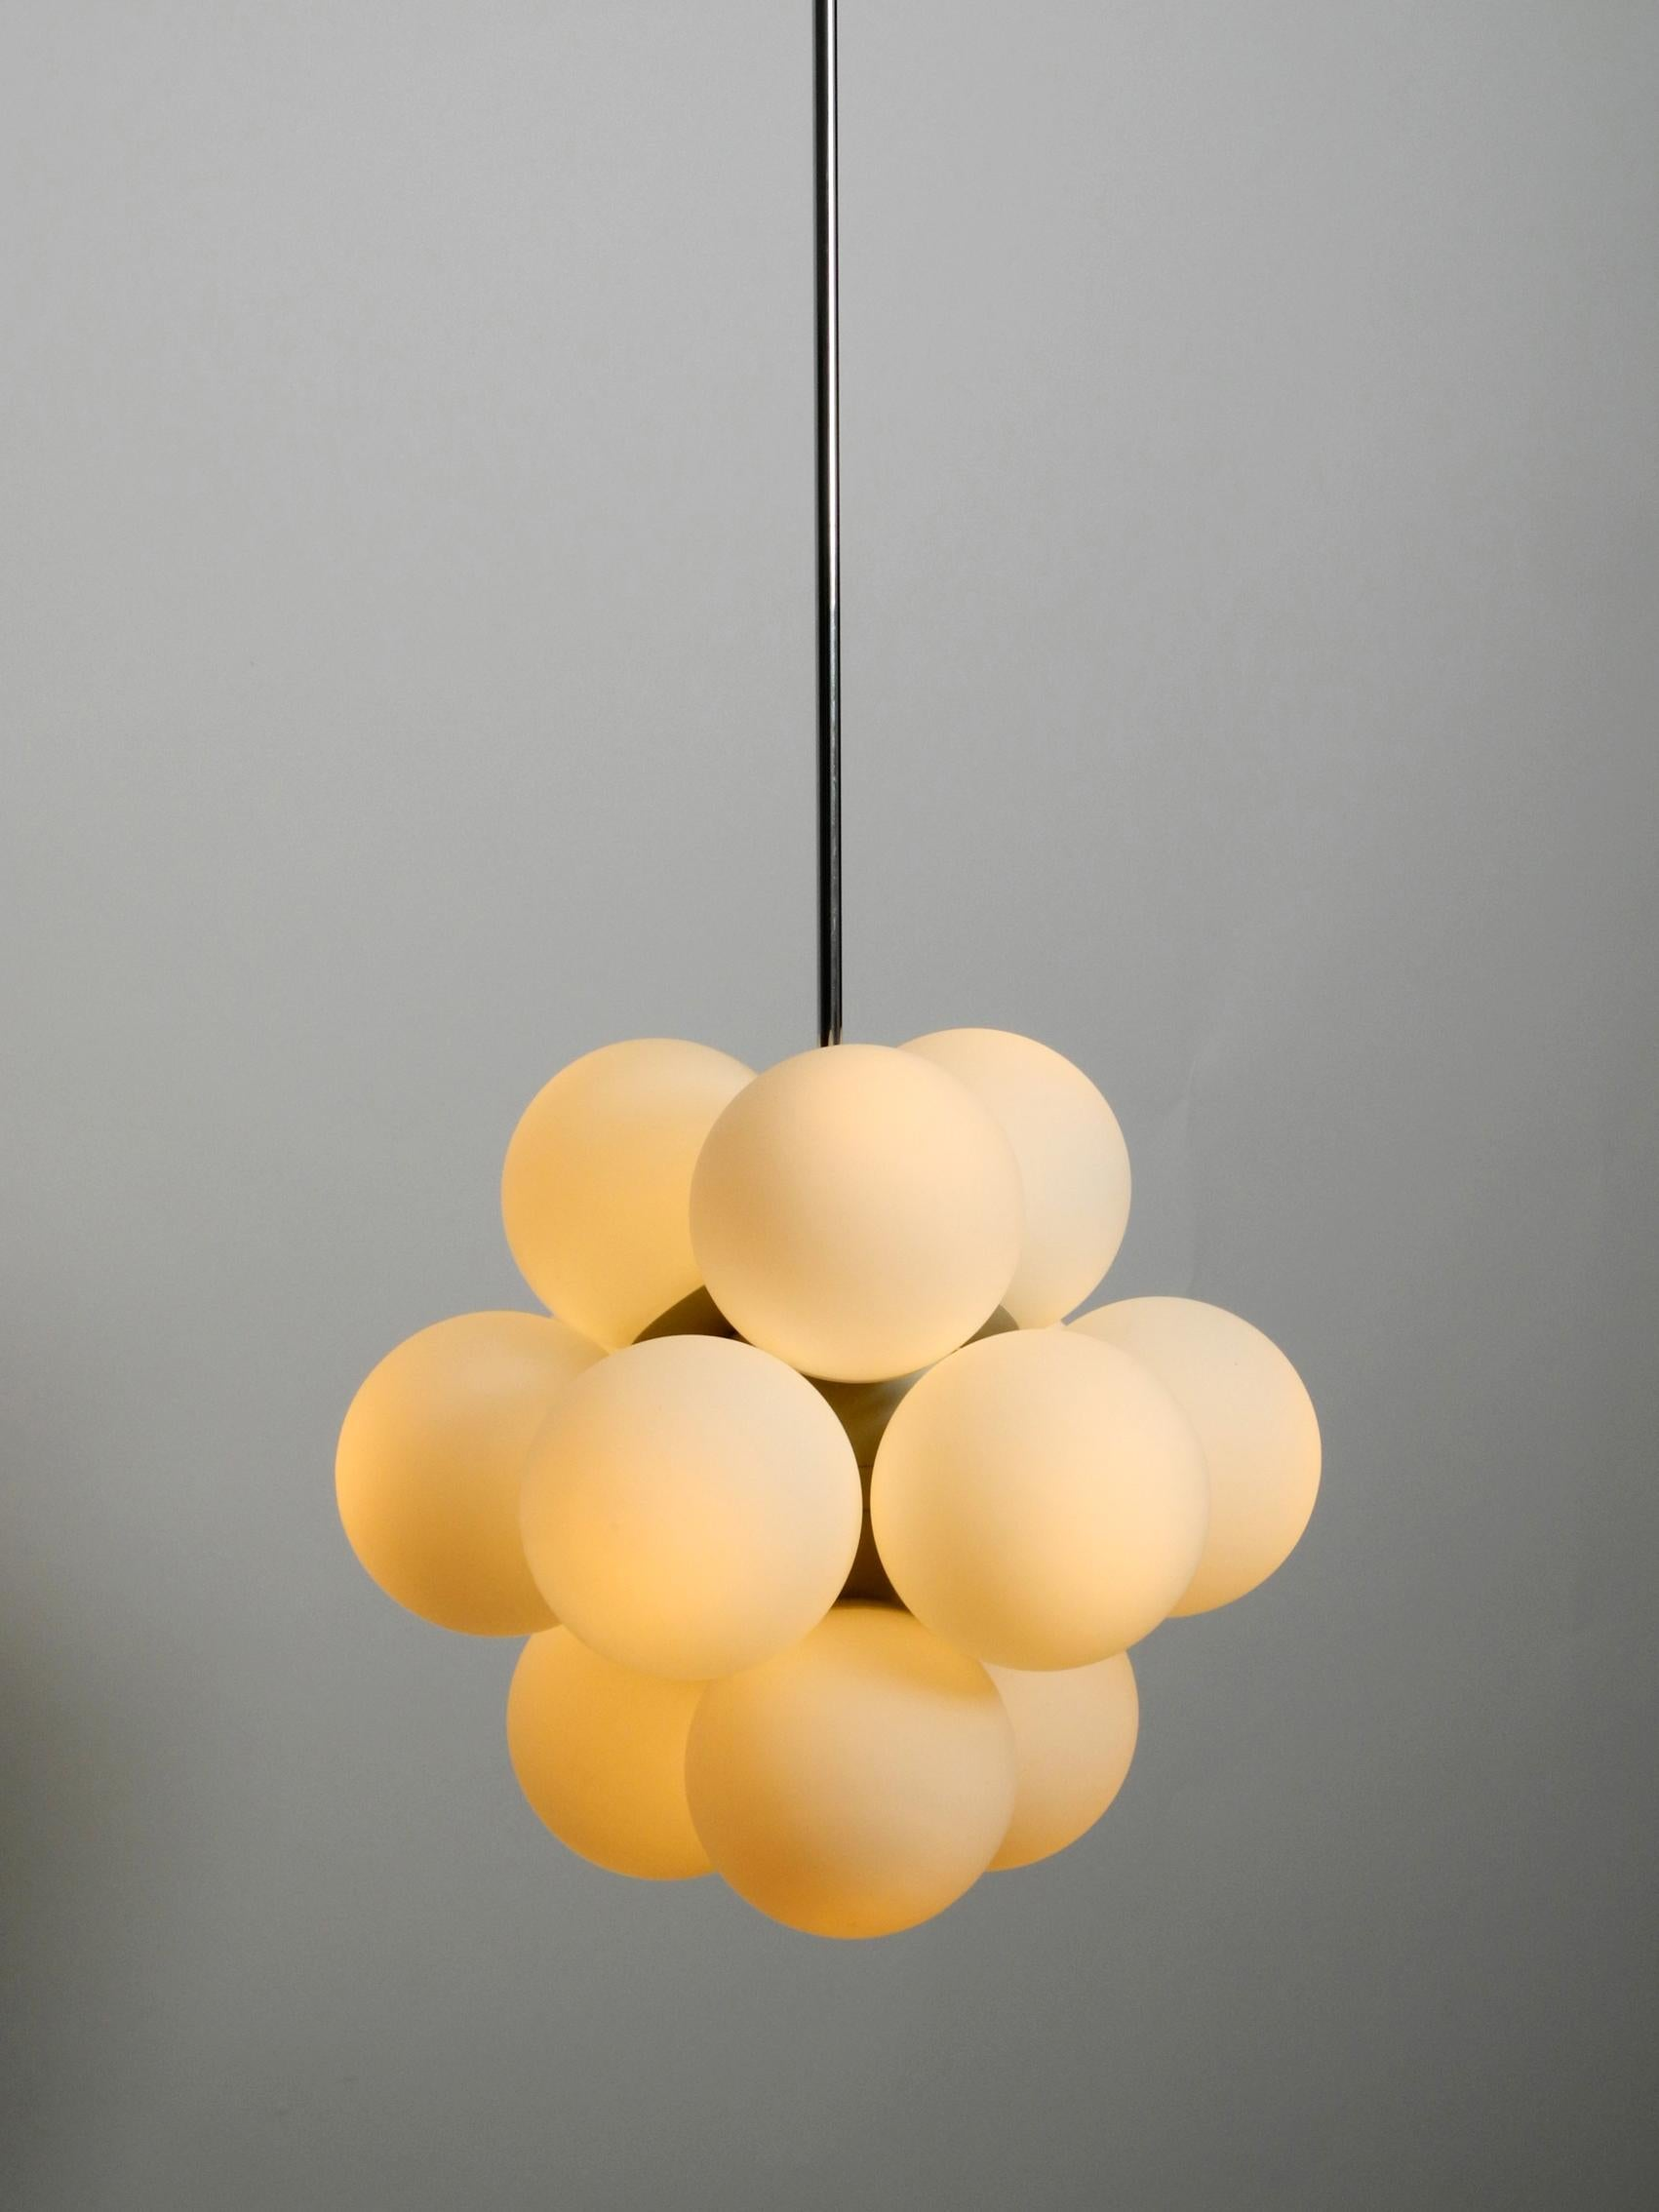 Leuchten Kaiser Unused 1960s Atomic Space Age Kaiser Leuchten Ceiling Lamp With 12 Glass Balls For Sale At 1stdibs